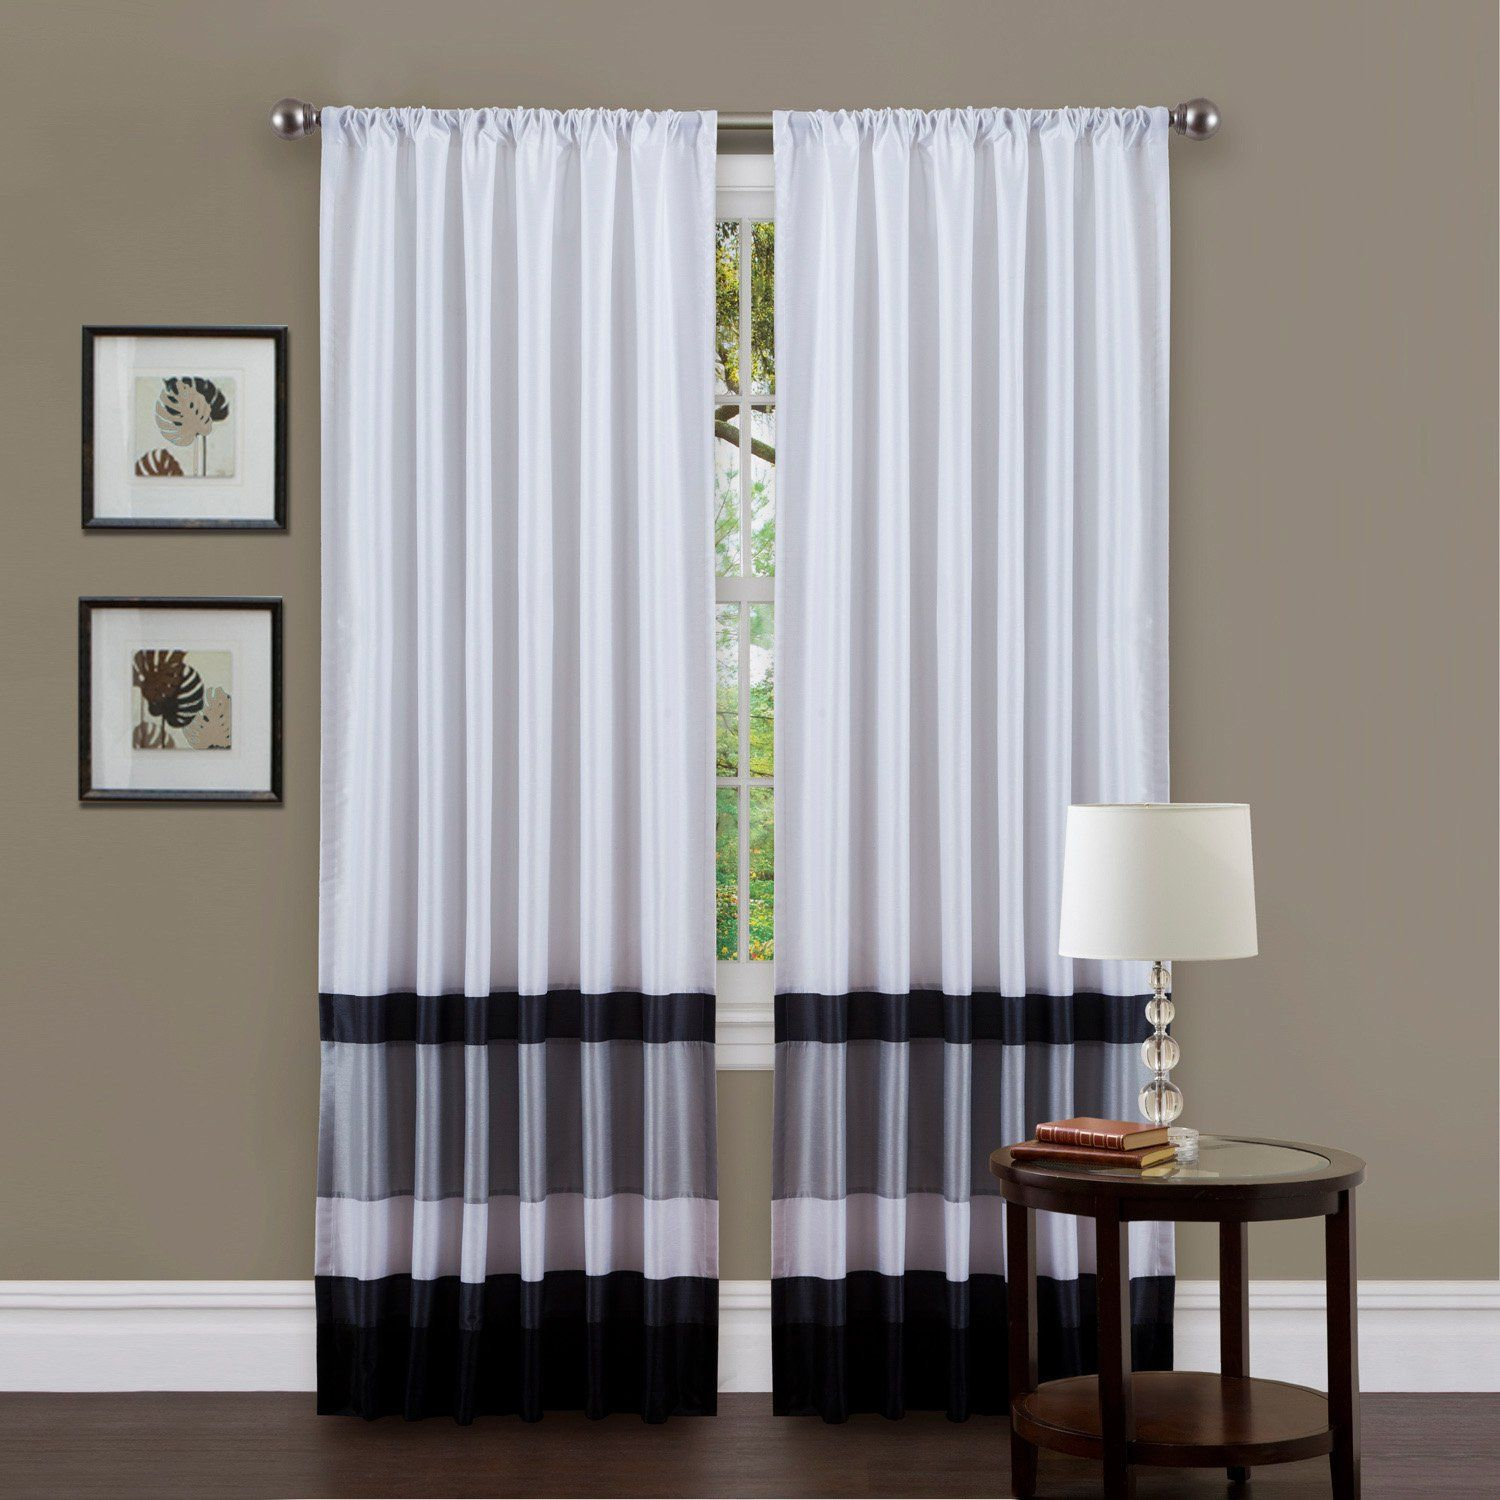 bay flair square options rod rods rail for curtains unbelievable curtain window windows